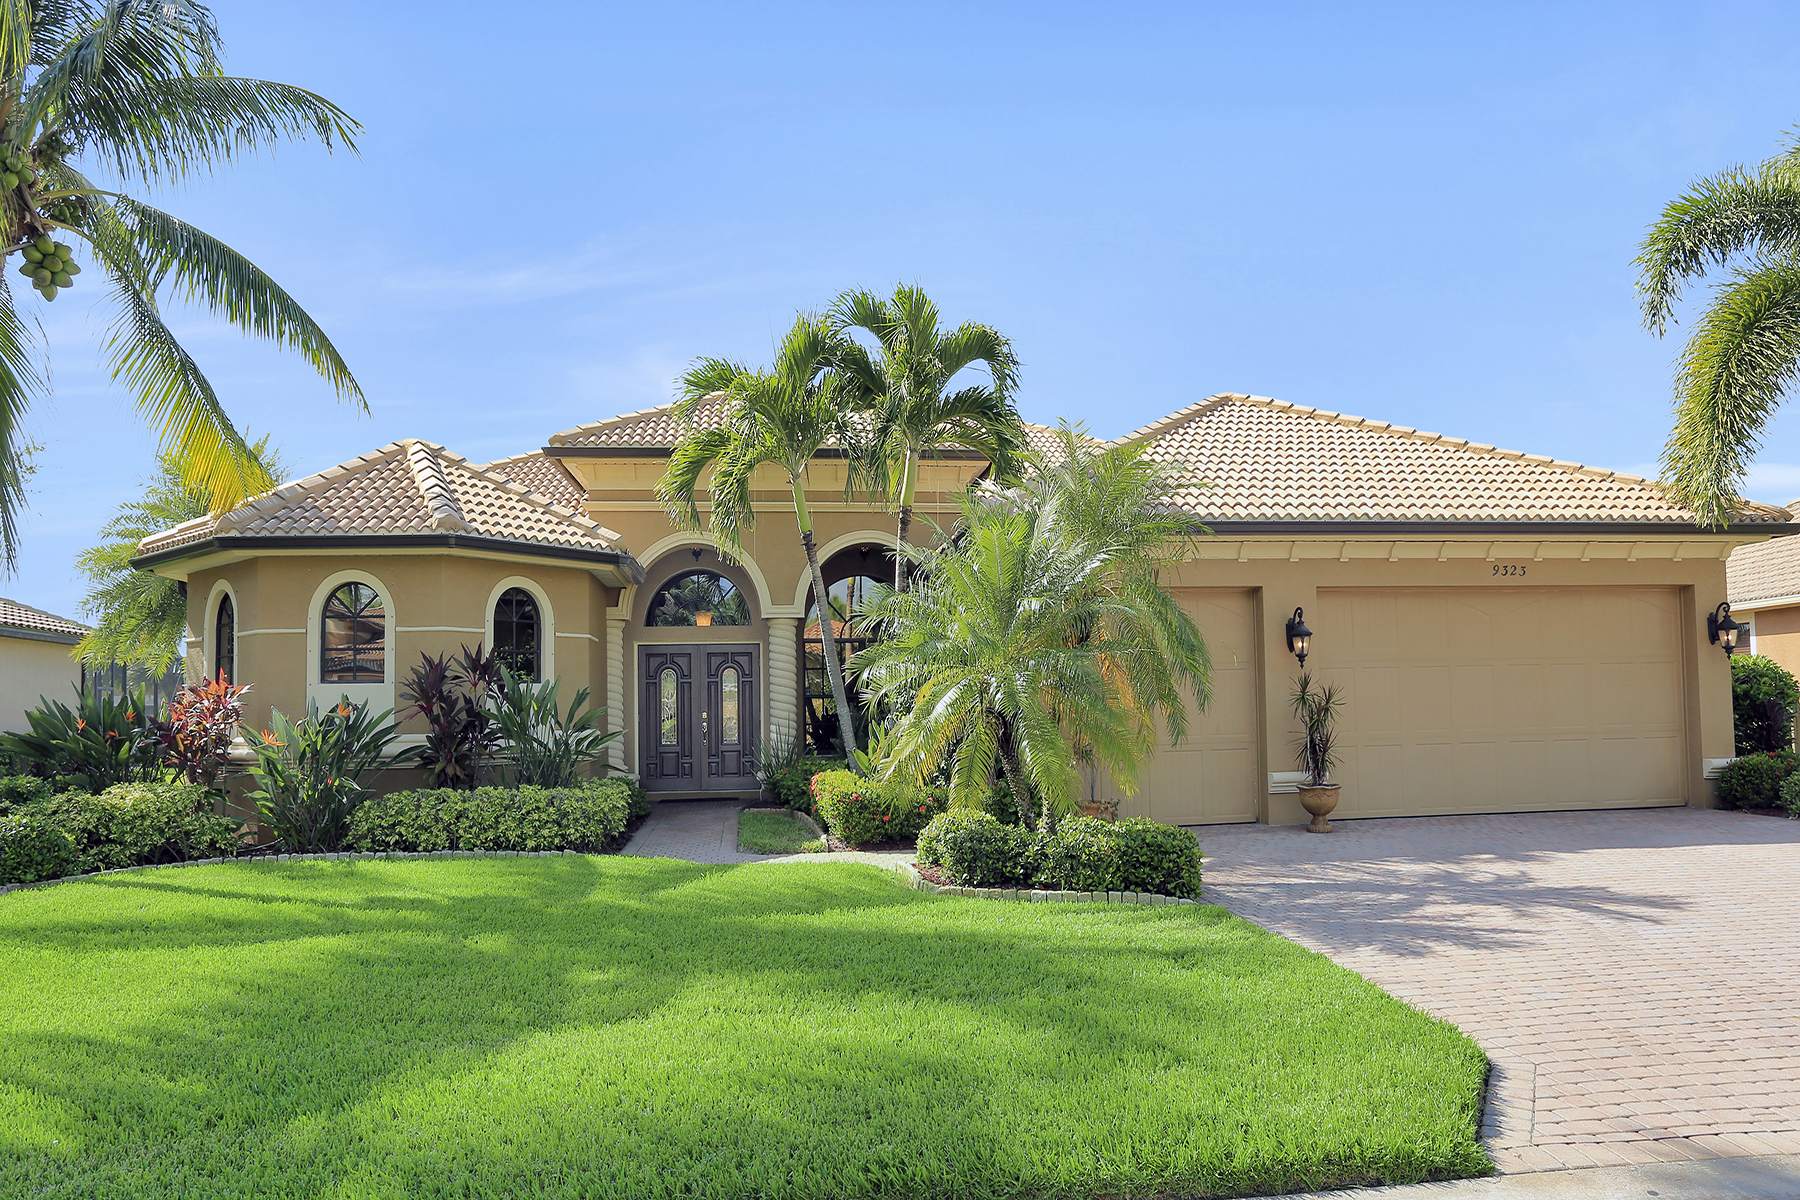 Single Family Homes for Sale at REFLECTION ISLES 9323 River Otter Drive, Fort Myers, Florida 33912 United States